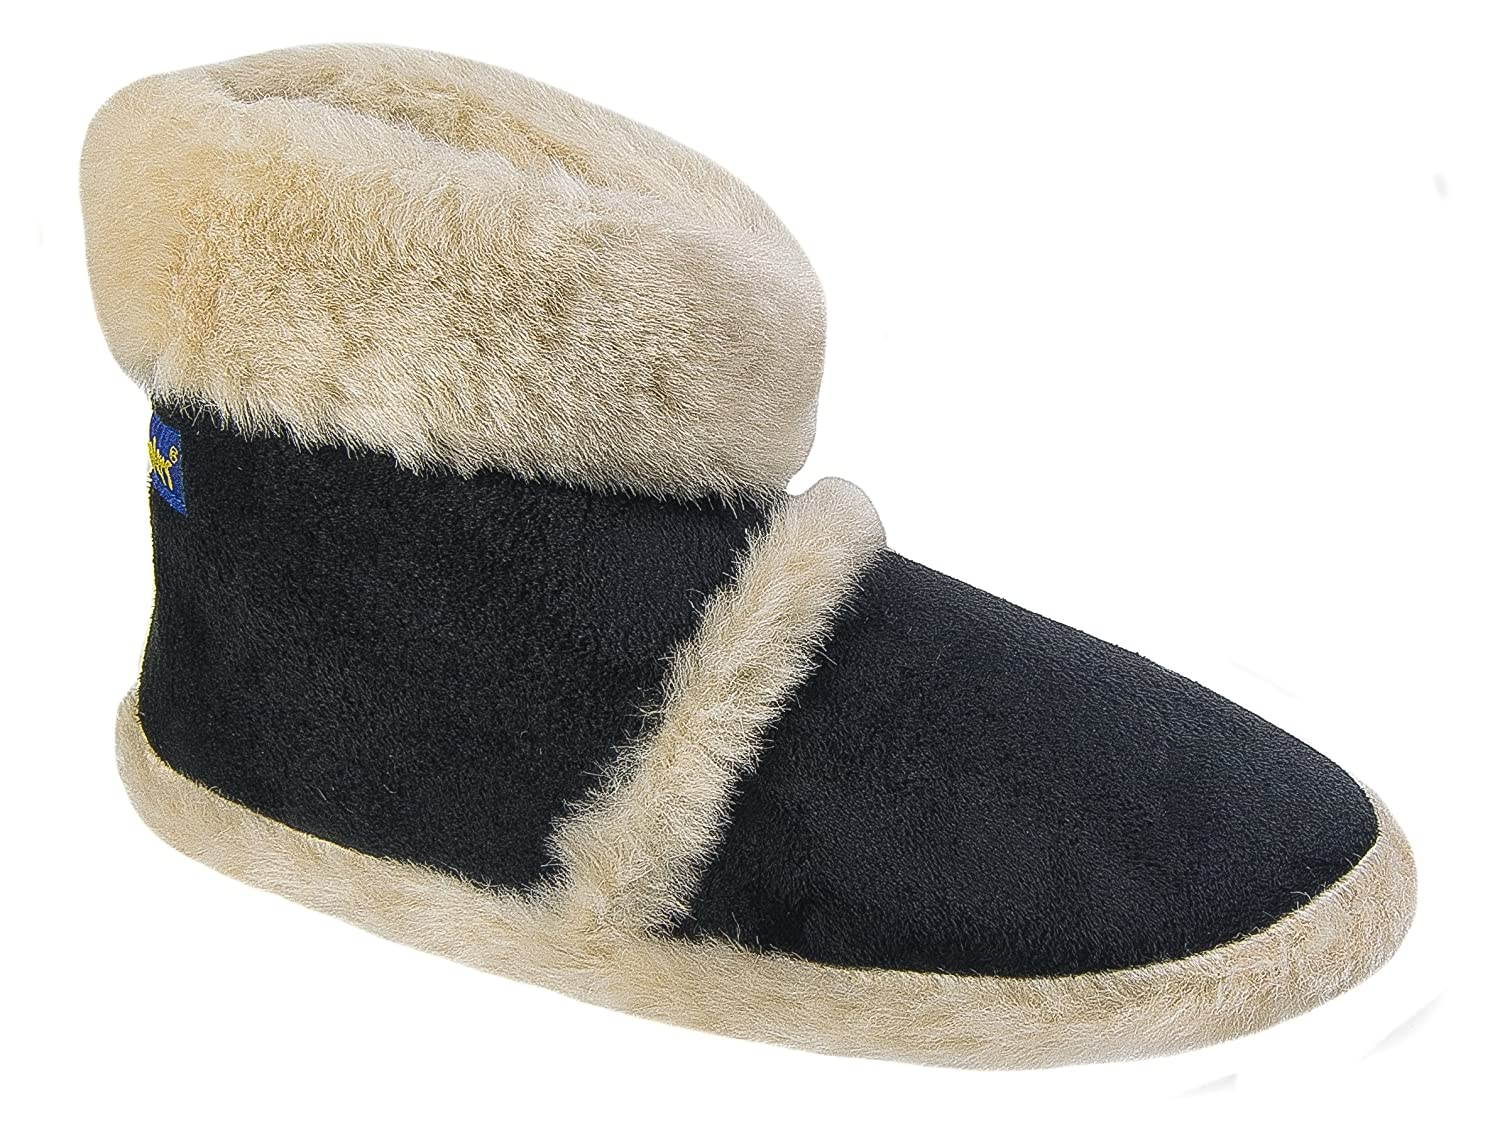 7105c9ffb Coolers Womens Ladies Boot Slippers/Black Warm Lined Fluffy Slip On:  Amazon.co.uk: Shoes & Bags